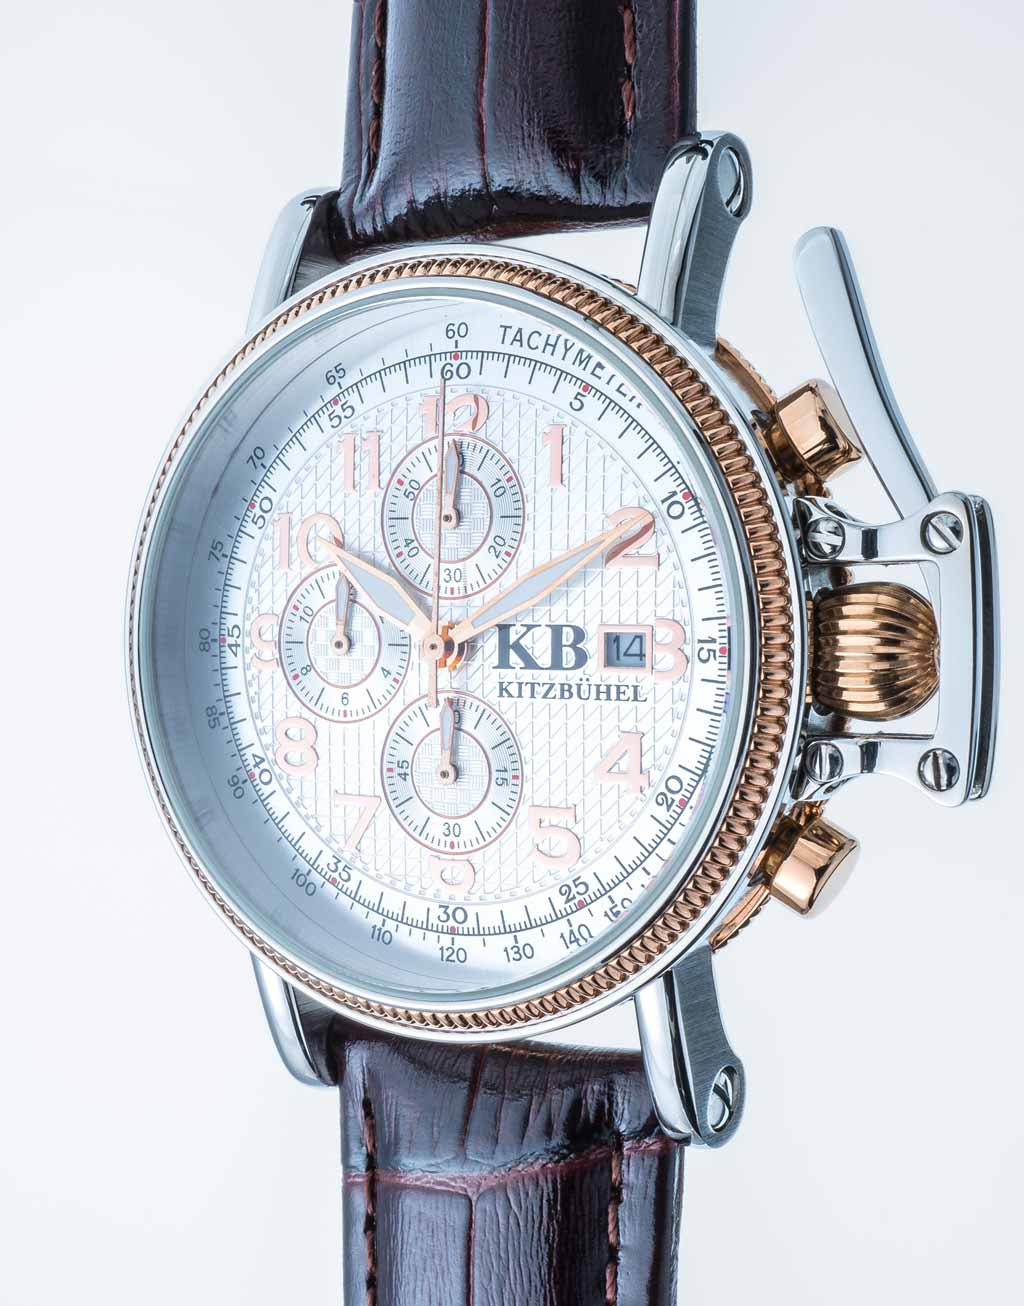 KB Uhr – Special Stopwatch